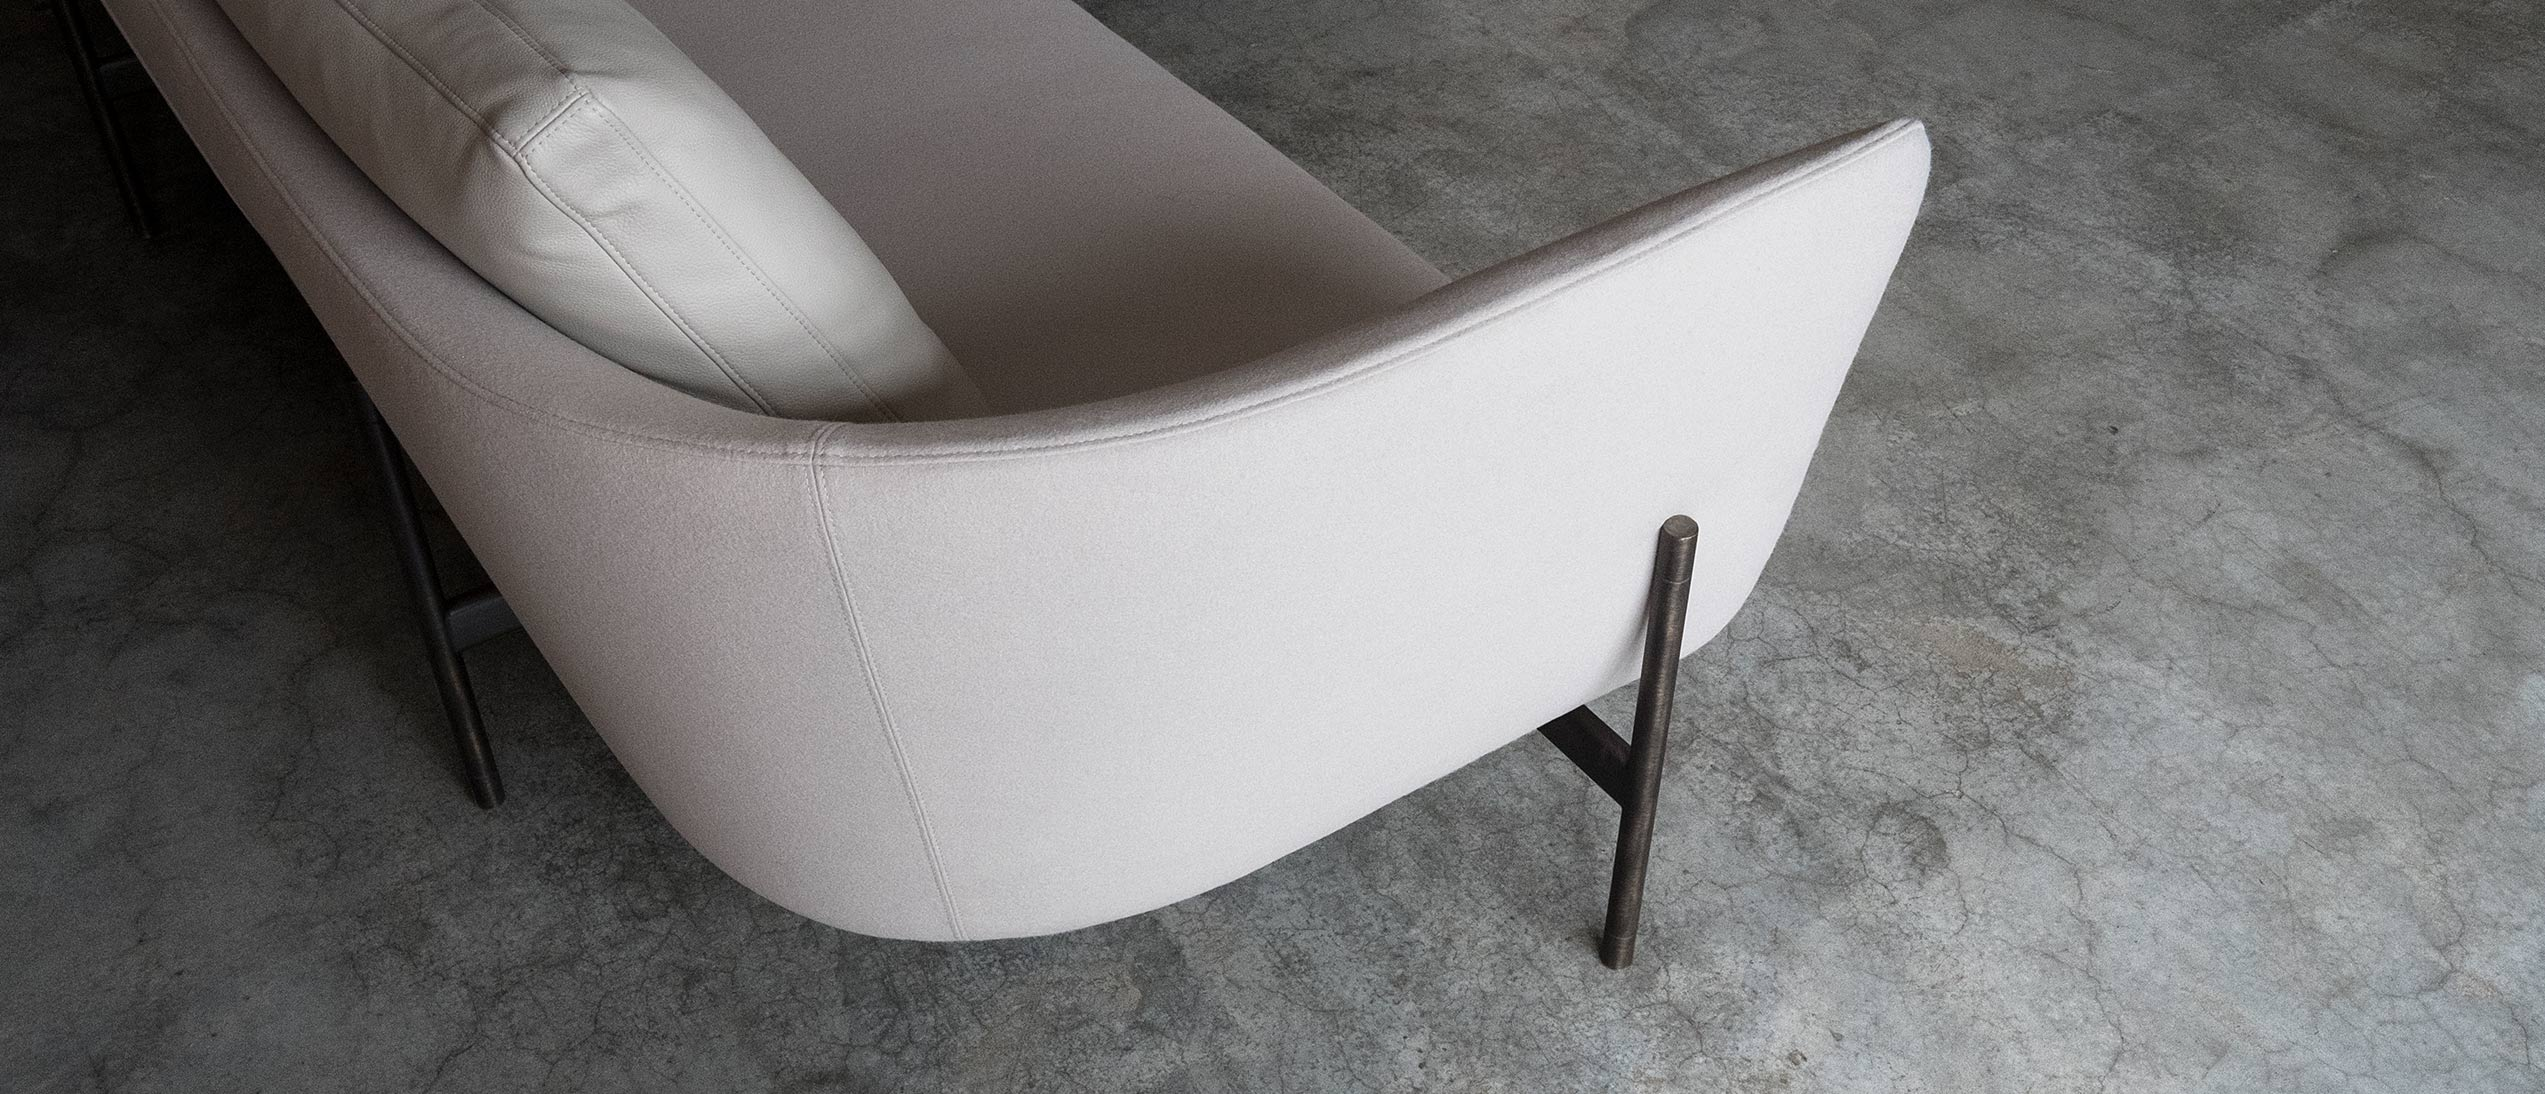 ICFF 2019 Bensen's Minimalist Contemporary Furniture Designs - Loft Sofa - - icff ICFF 2019: Bensen's Minimalist Contemporary Furniture Designs ICFF 2019 Bensens Minimalist Contemporary Furniture Designs Loft Sofa 1 1